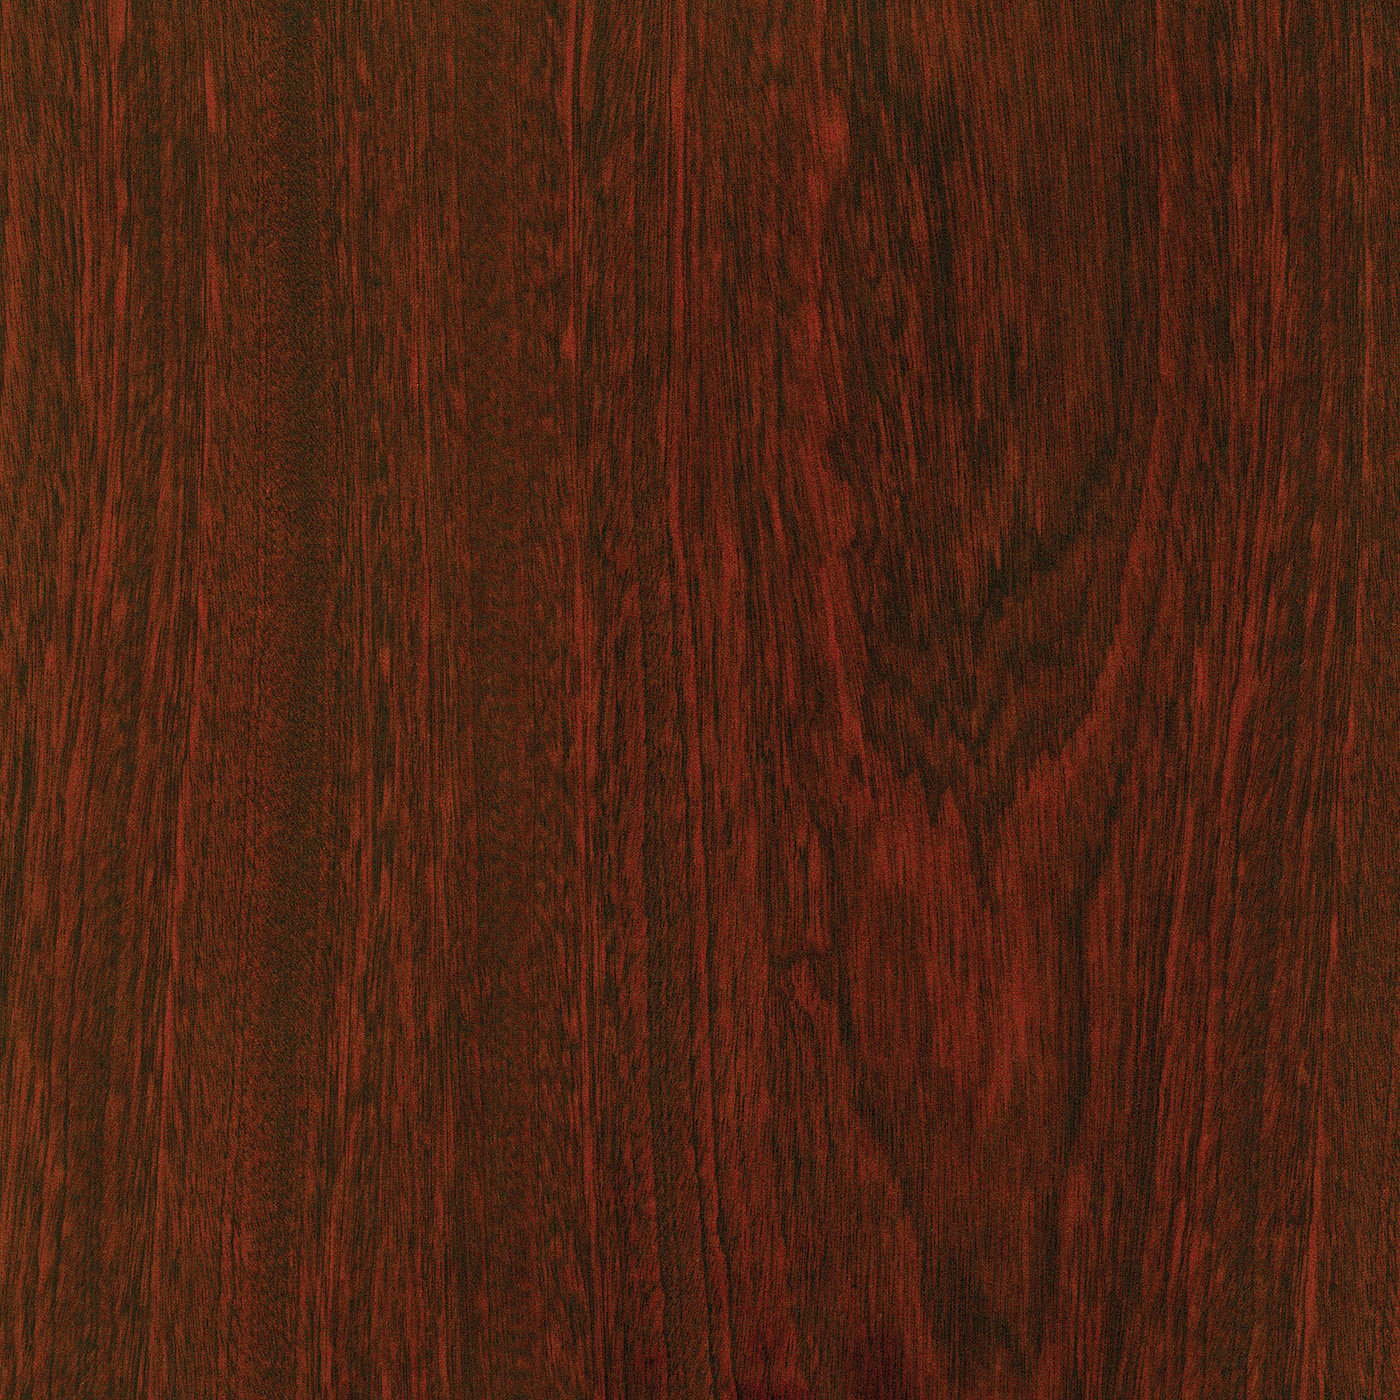 Dark Walnut Stained Cabinets Dark Walnut Stain On Red